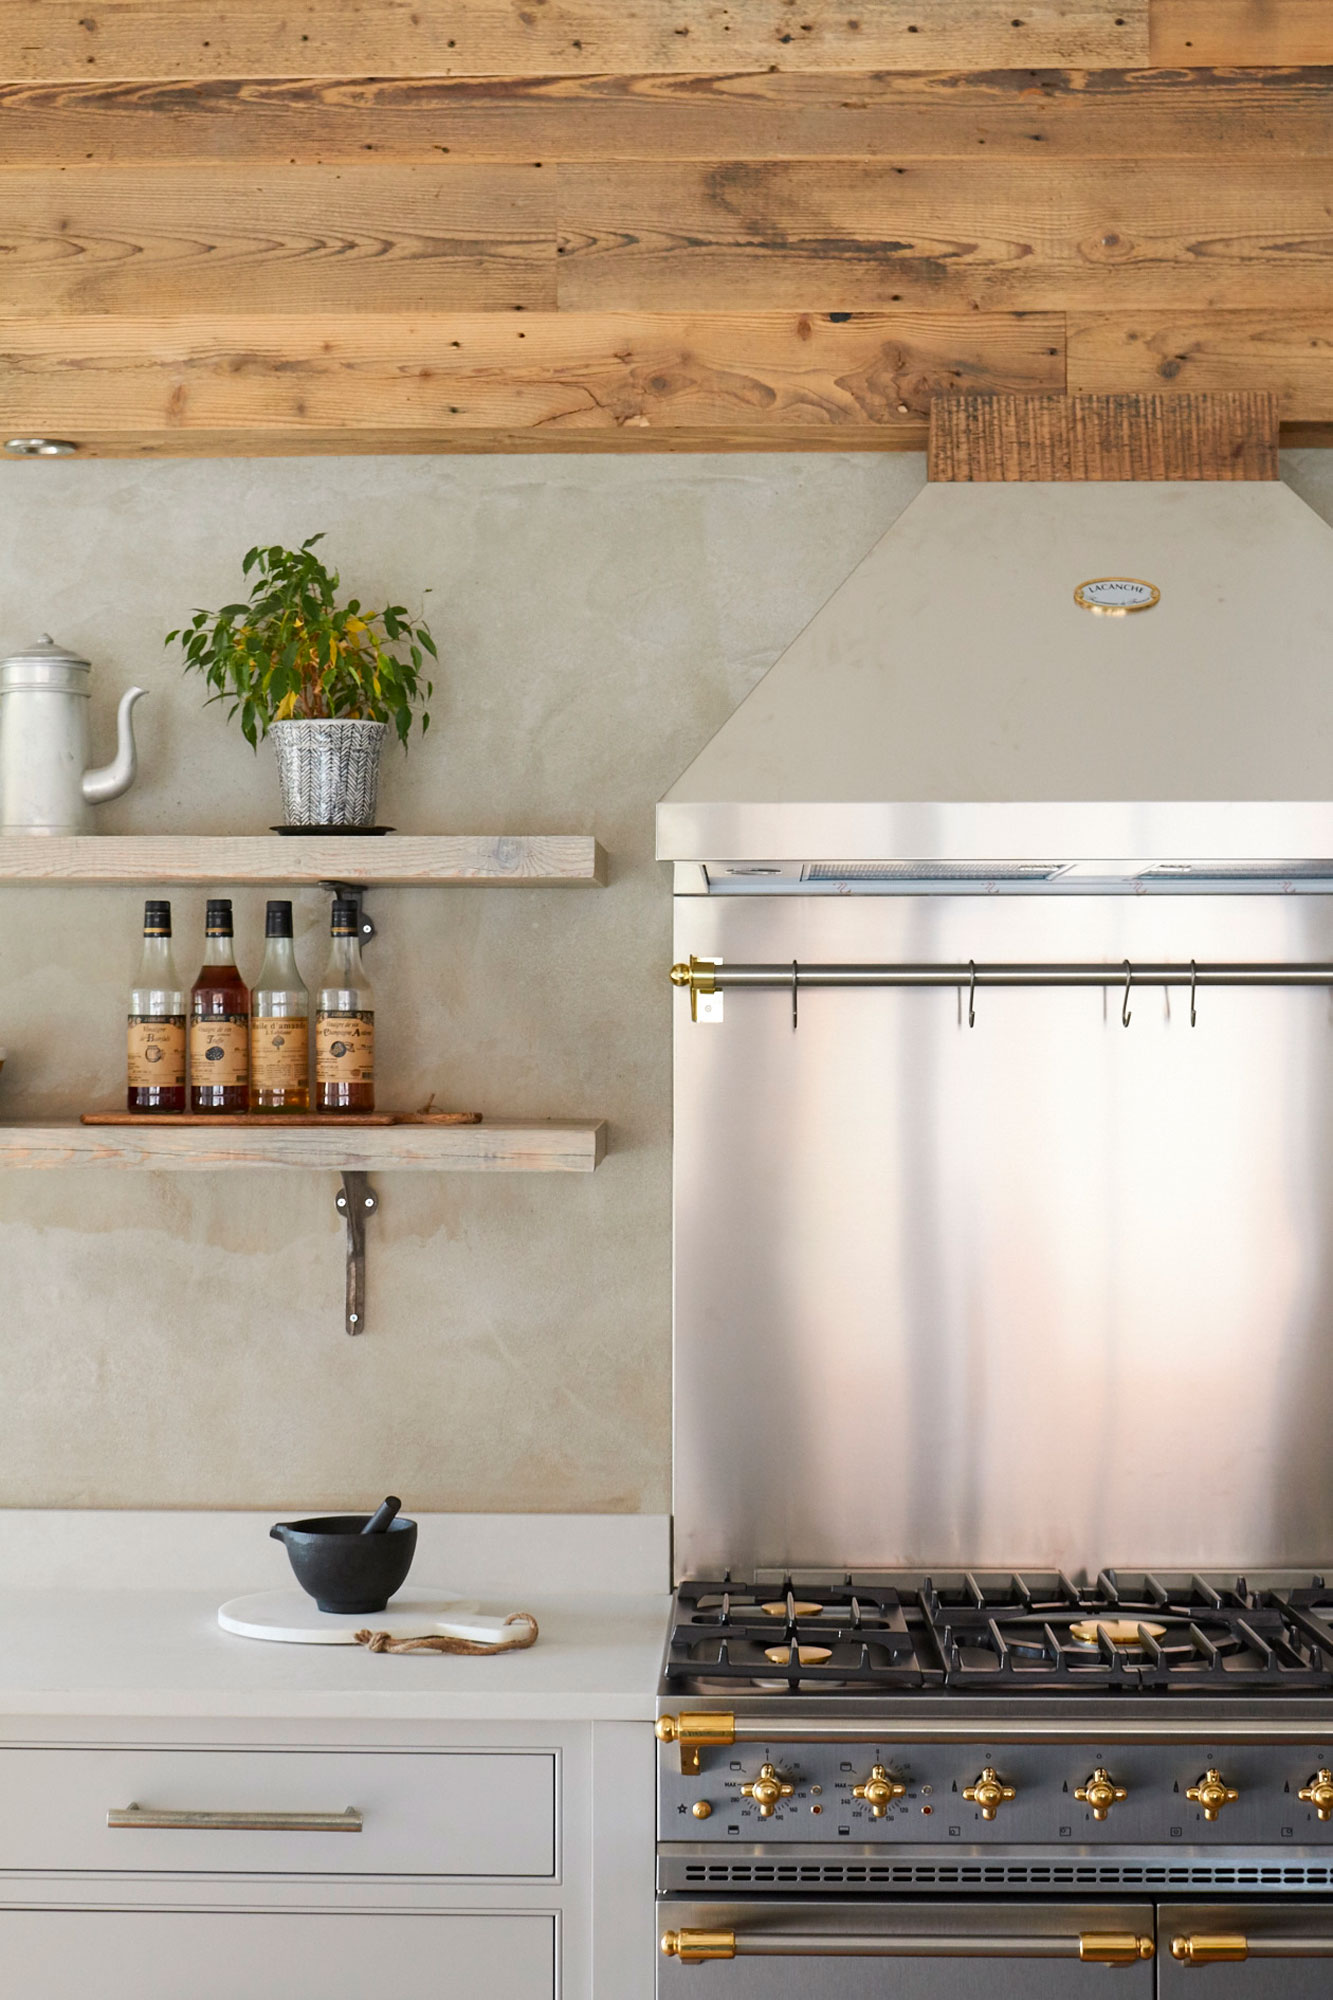 Lacanche brasserie stainless steel hood above gas range cooker